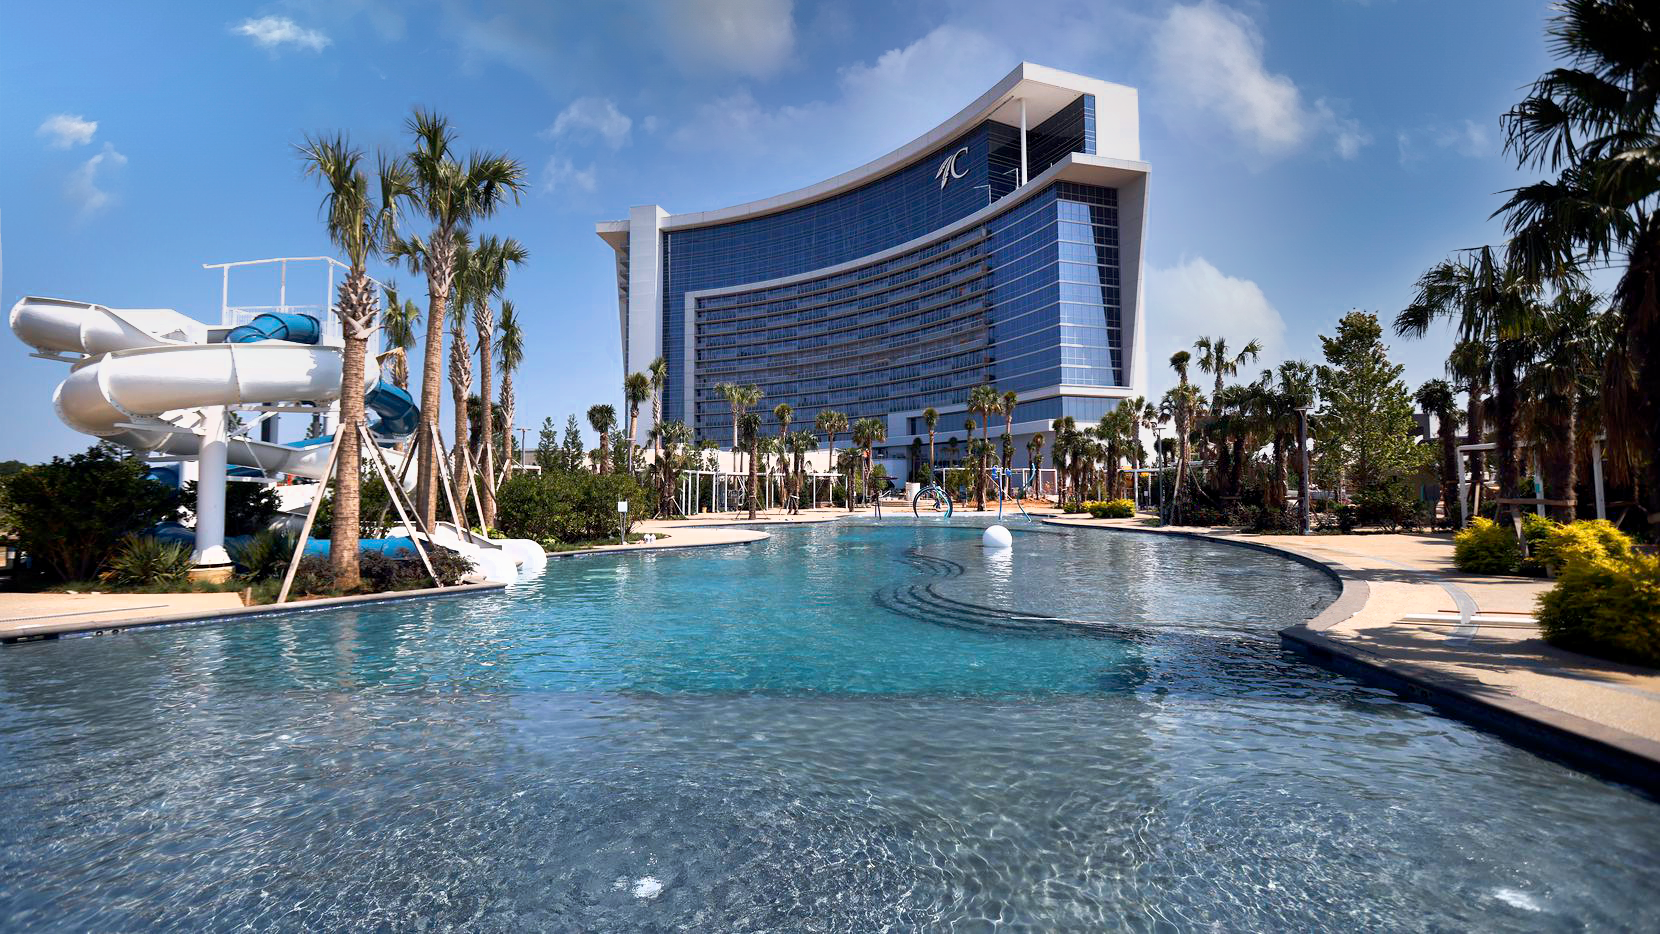 Choctaw Resort and Casino Expansion